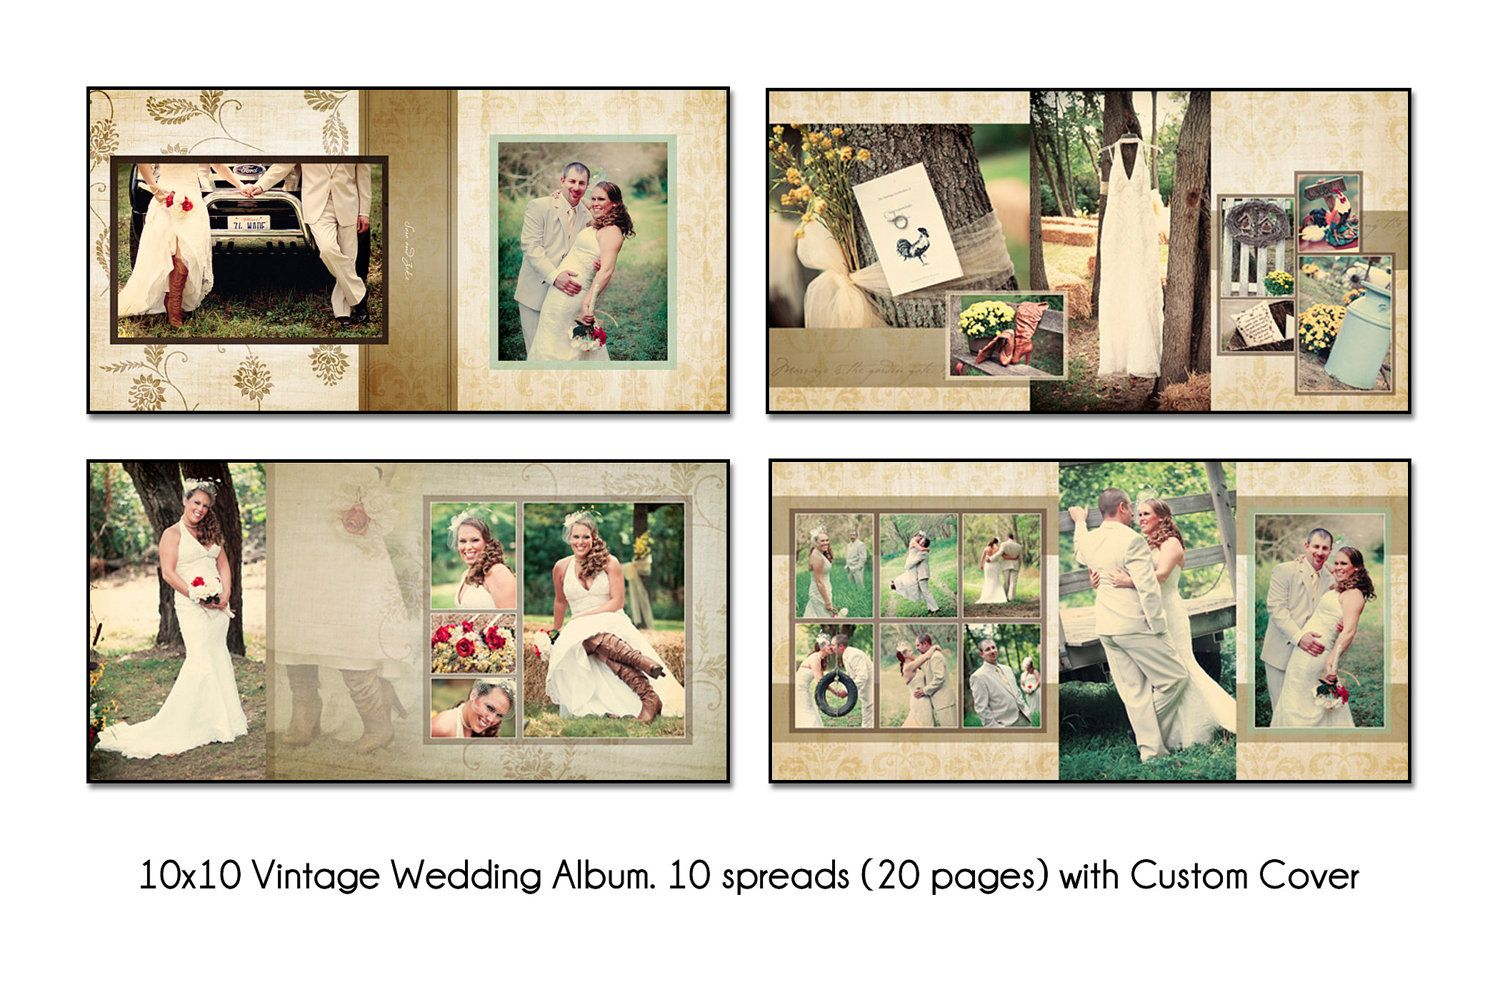 Psd Wedding Al Template Vintage 10x10 10spread 20 Page Design With Custom